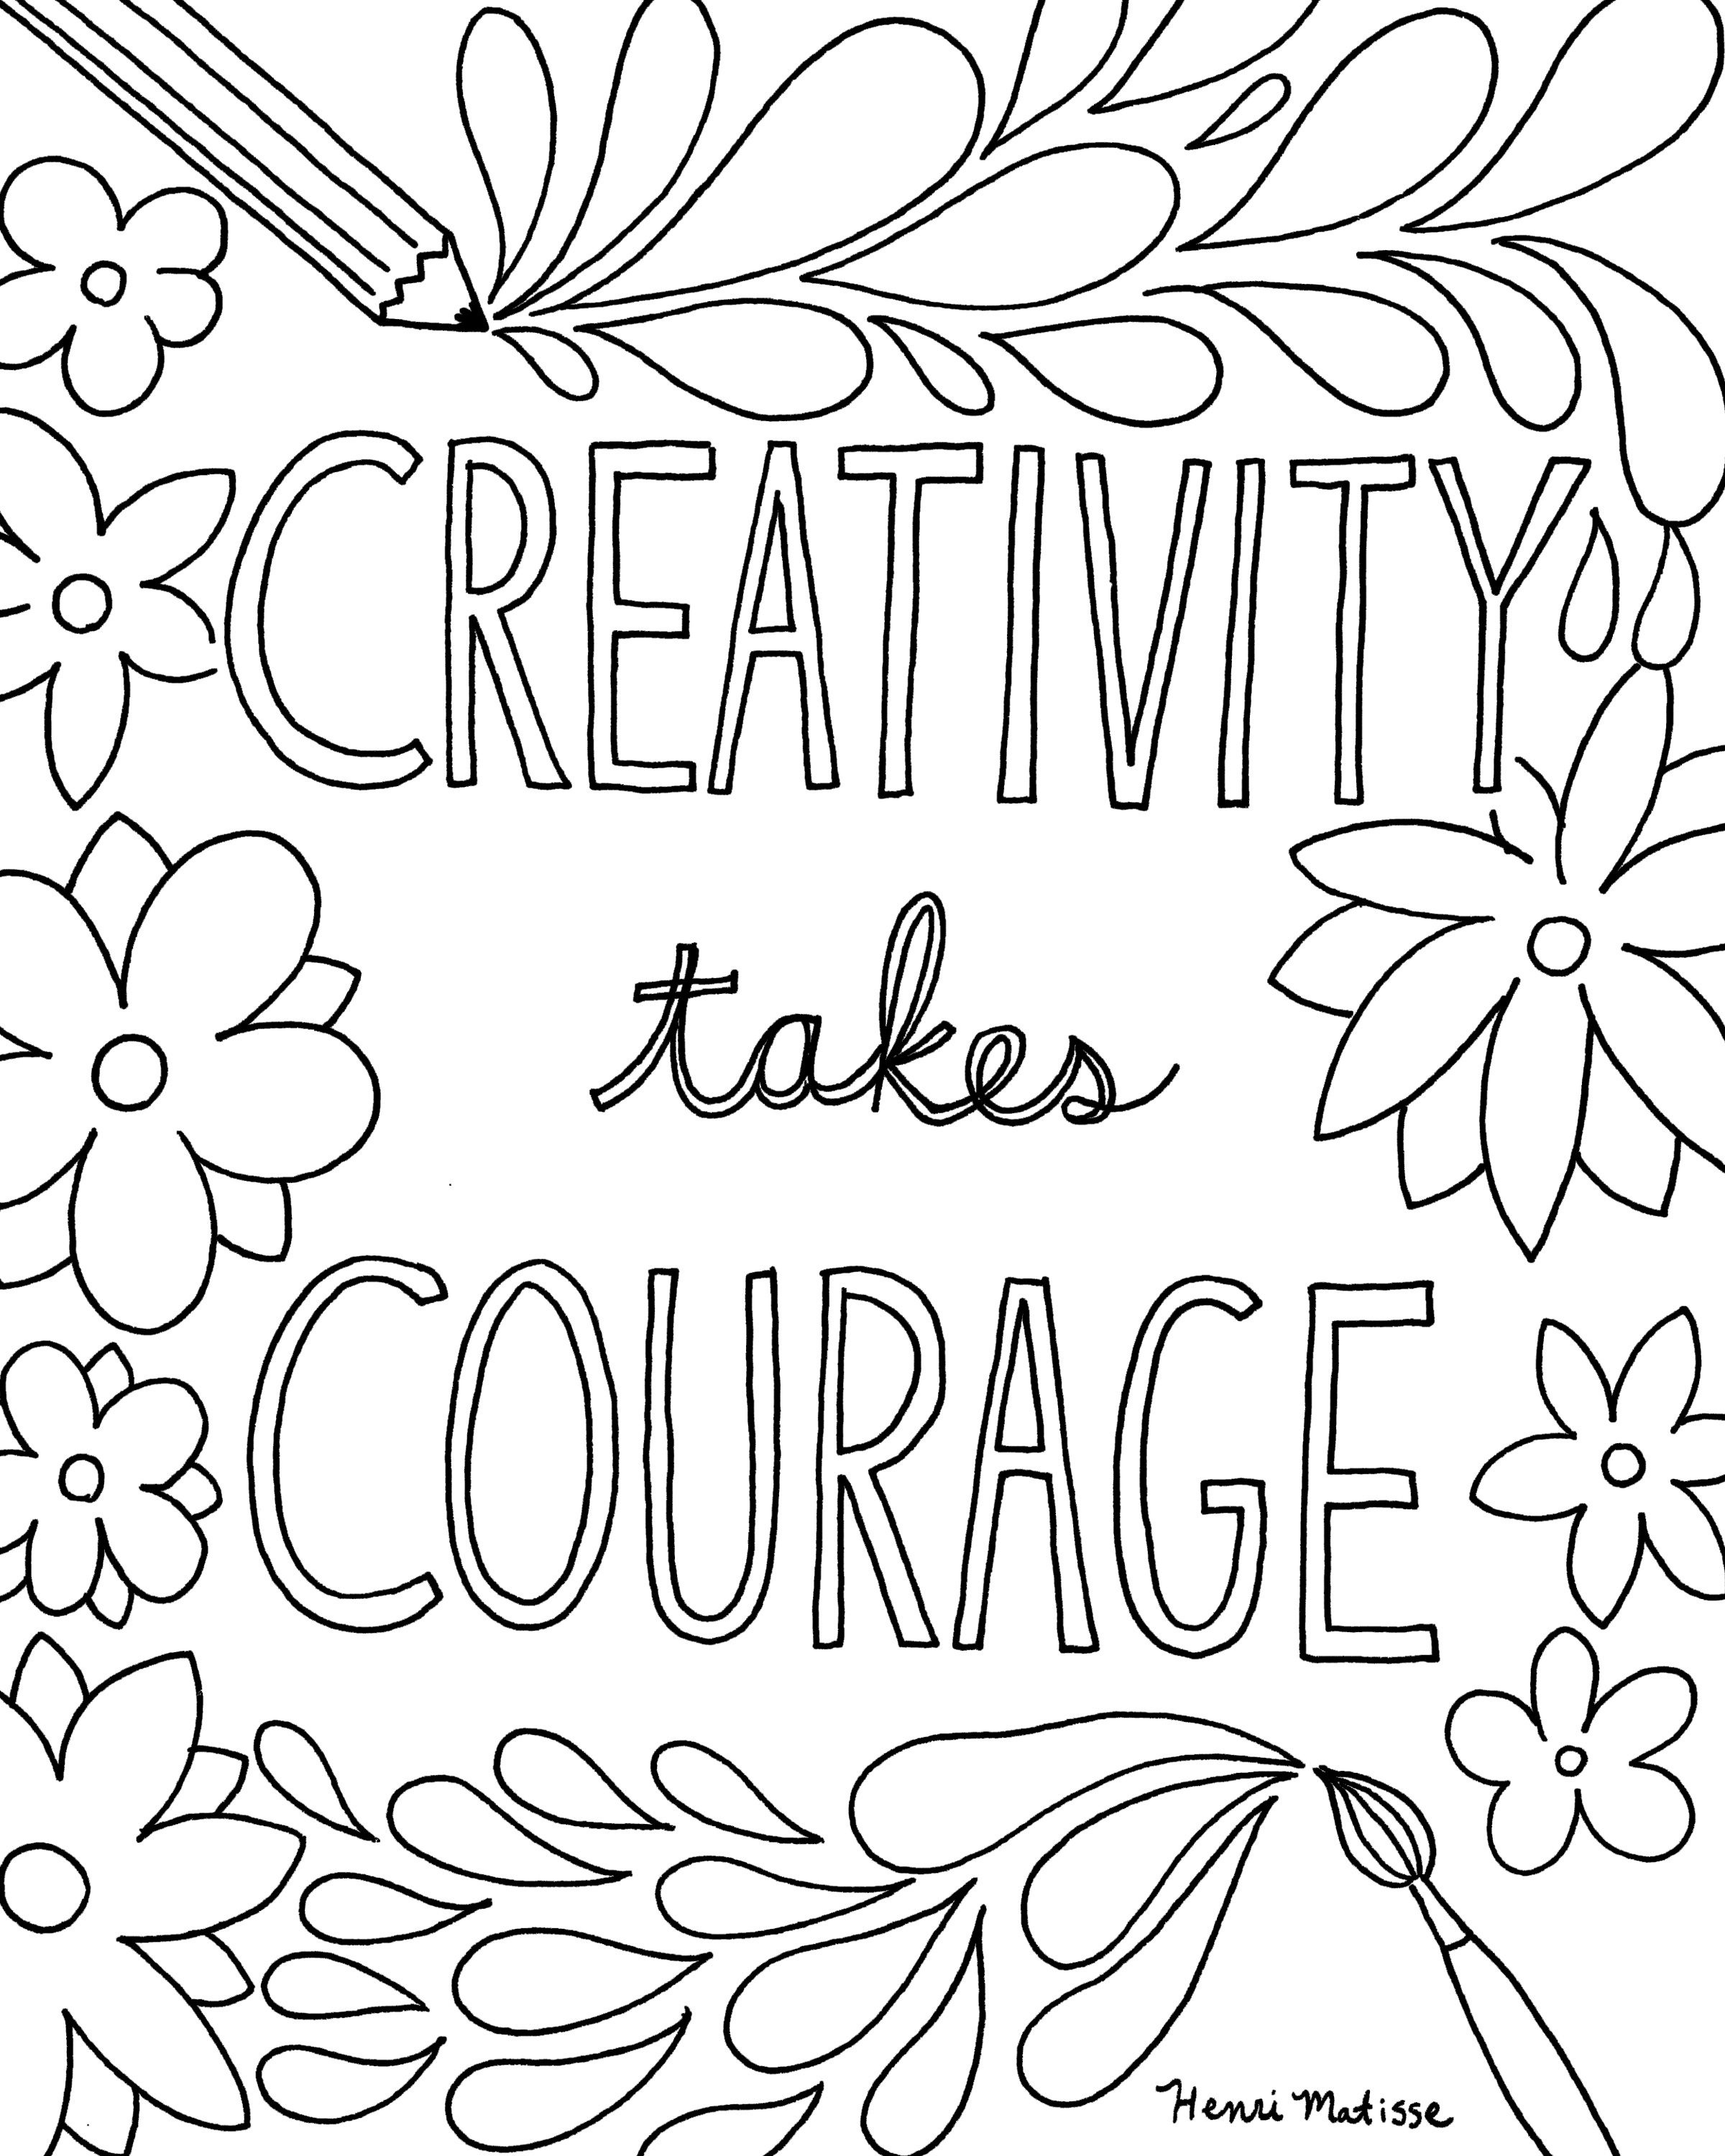 Free Printable Quote Coloring Pages For Grown-Ups | Drawing And - Free Printable Quotes Coloring Pages